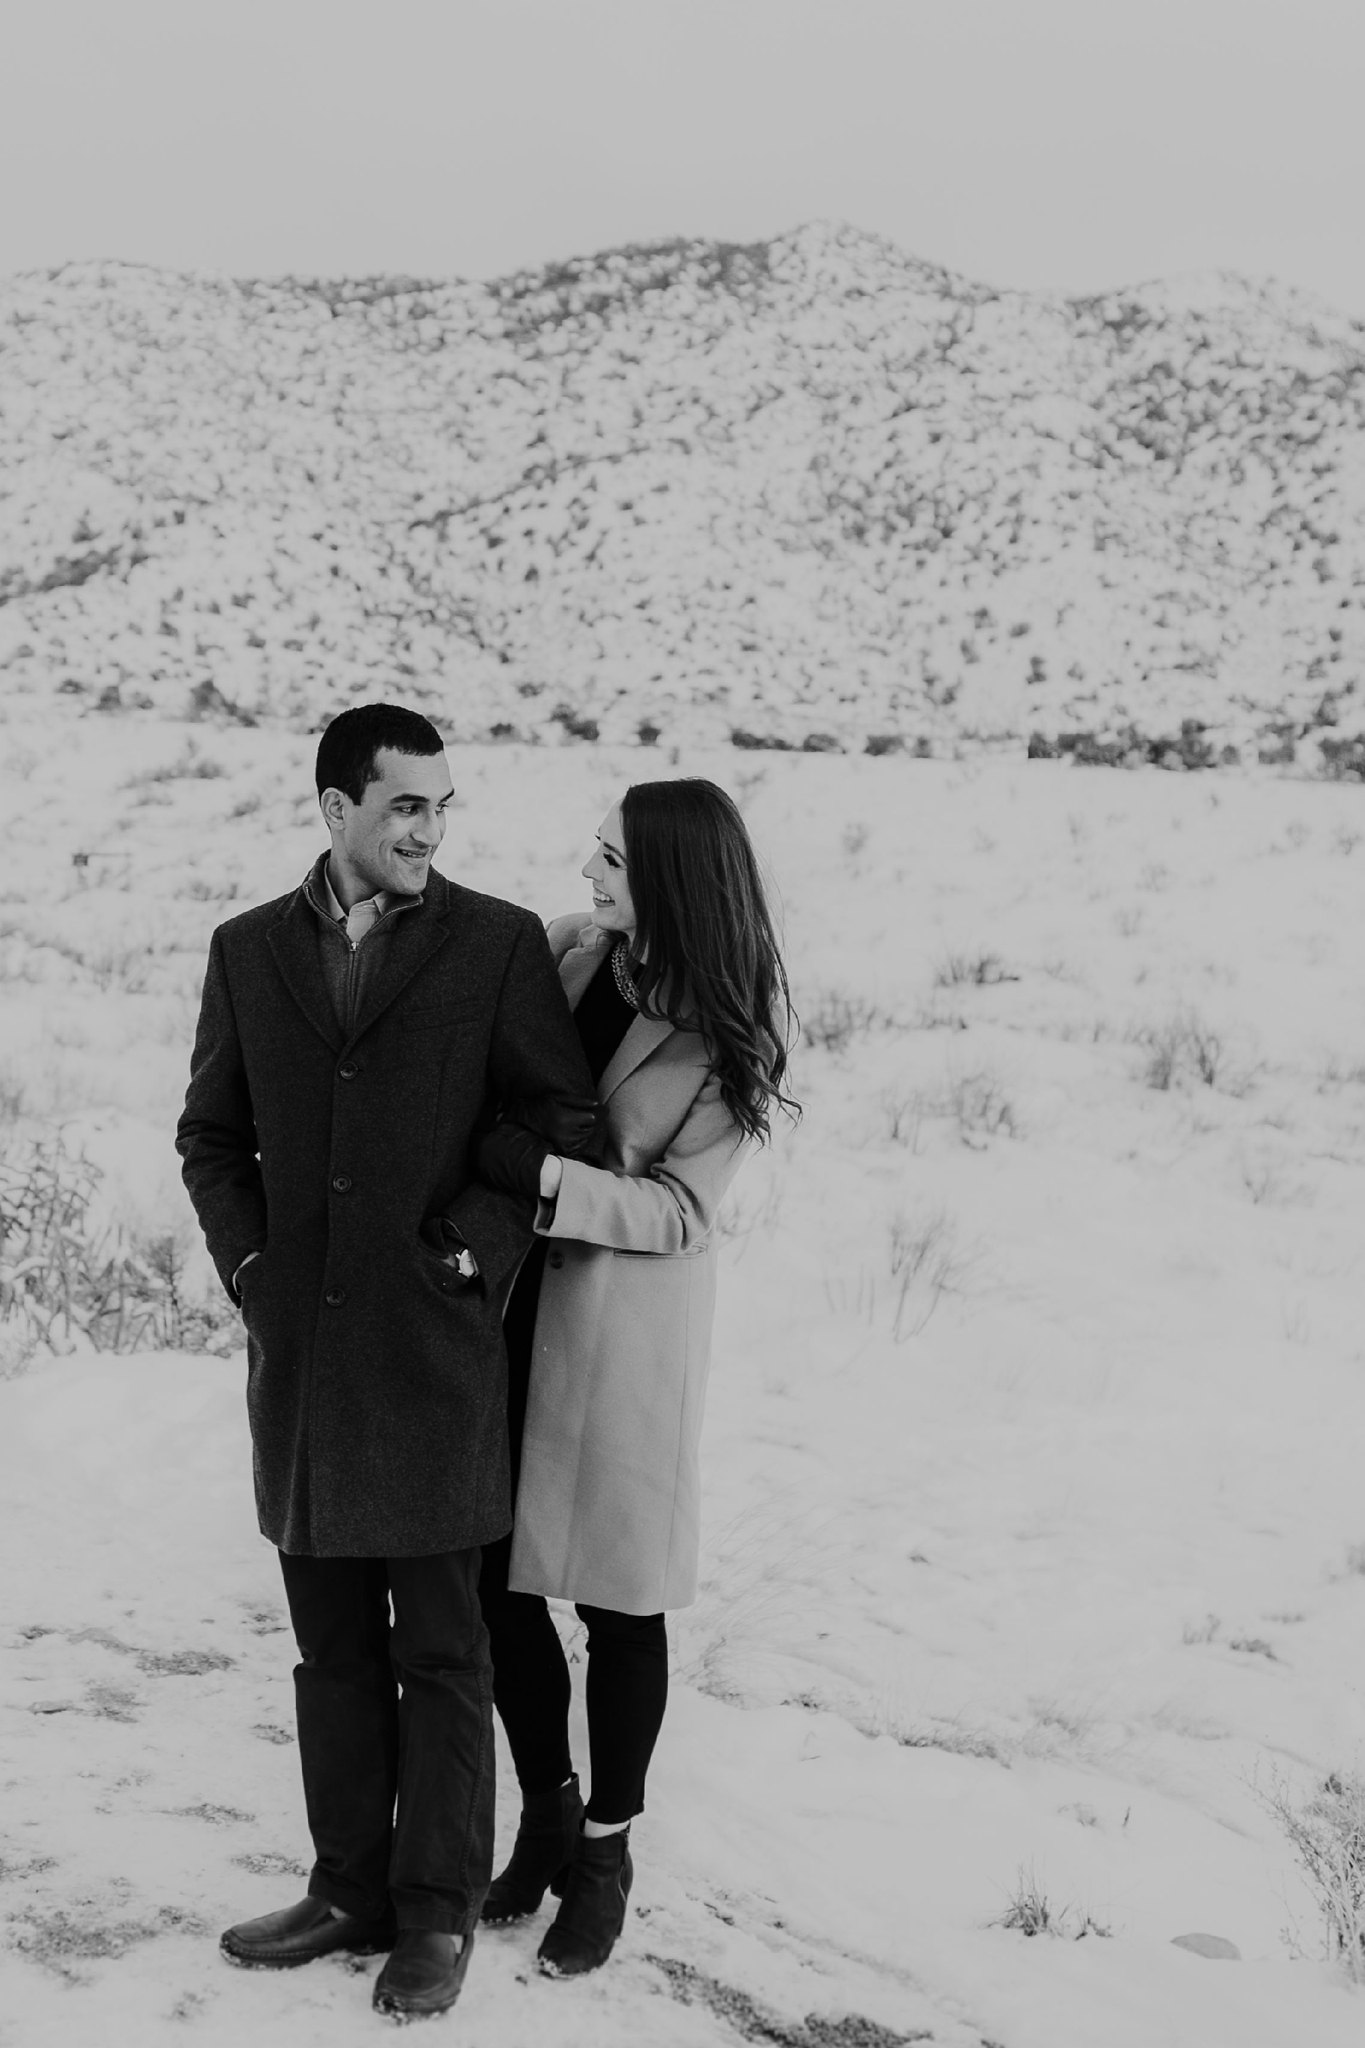 Alicia+lucia+photography+-+albuquerque+wedding+photographer+-+santa+fe+wedding+photography+-+new+mexico+wedding+photographer+-+new+mexico+wedding+-+engagement+-+winter+engagement+-+santa+fe+wedding+-+loretto+wedding+-+hindu+wedding_0006.jpg